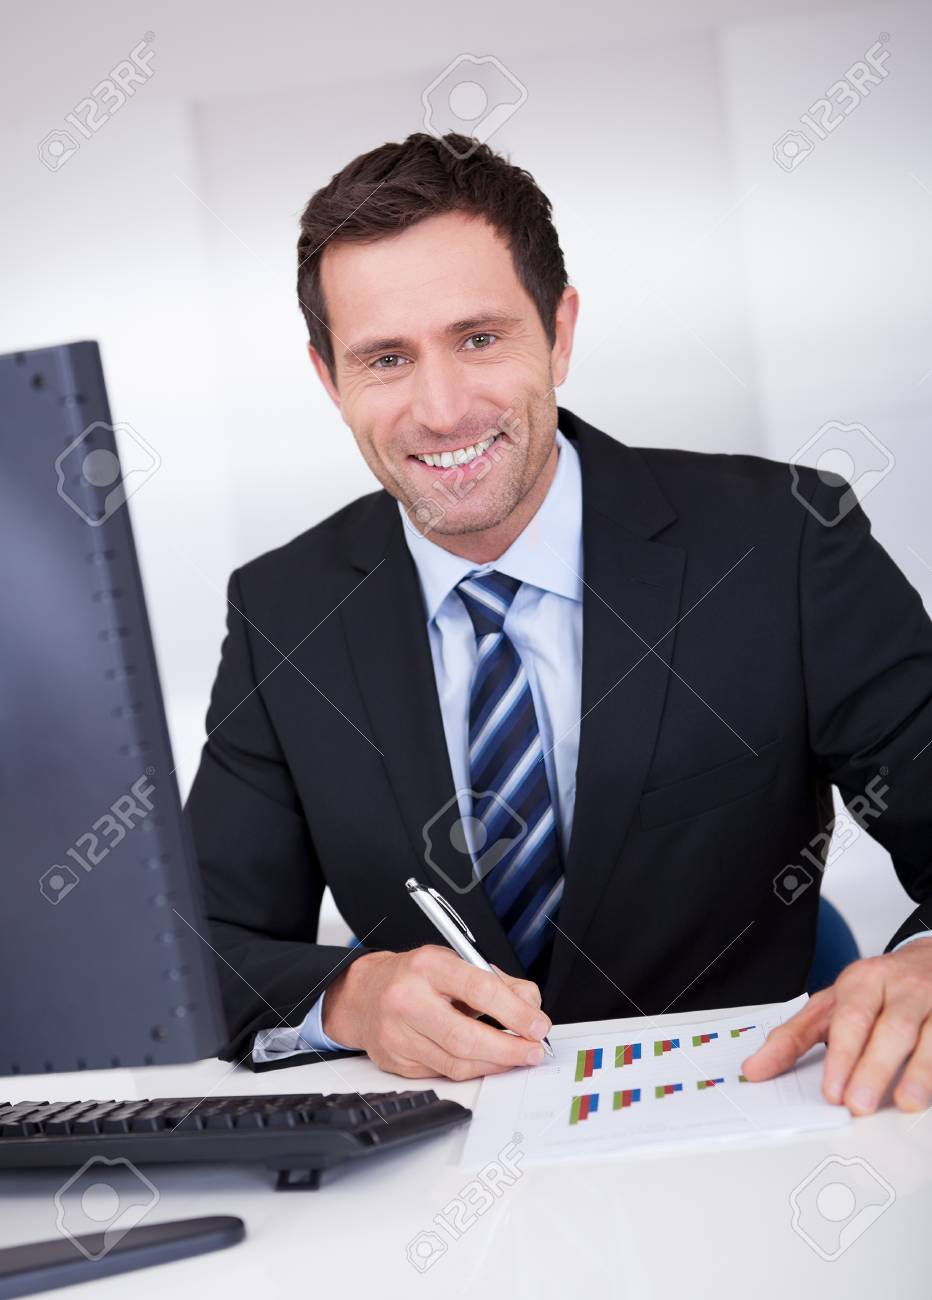 Portrait Of Happy Businessman At Workplace In the Office Stock Photo - 15403711